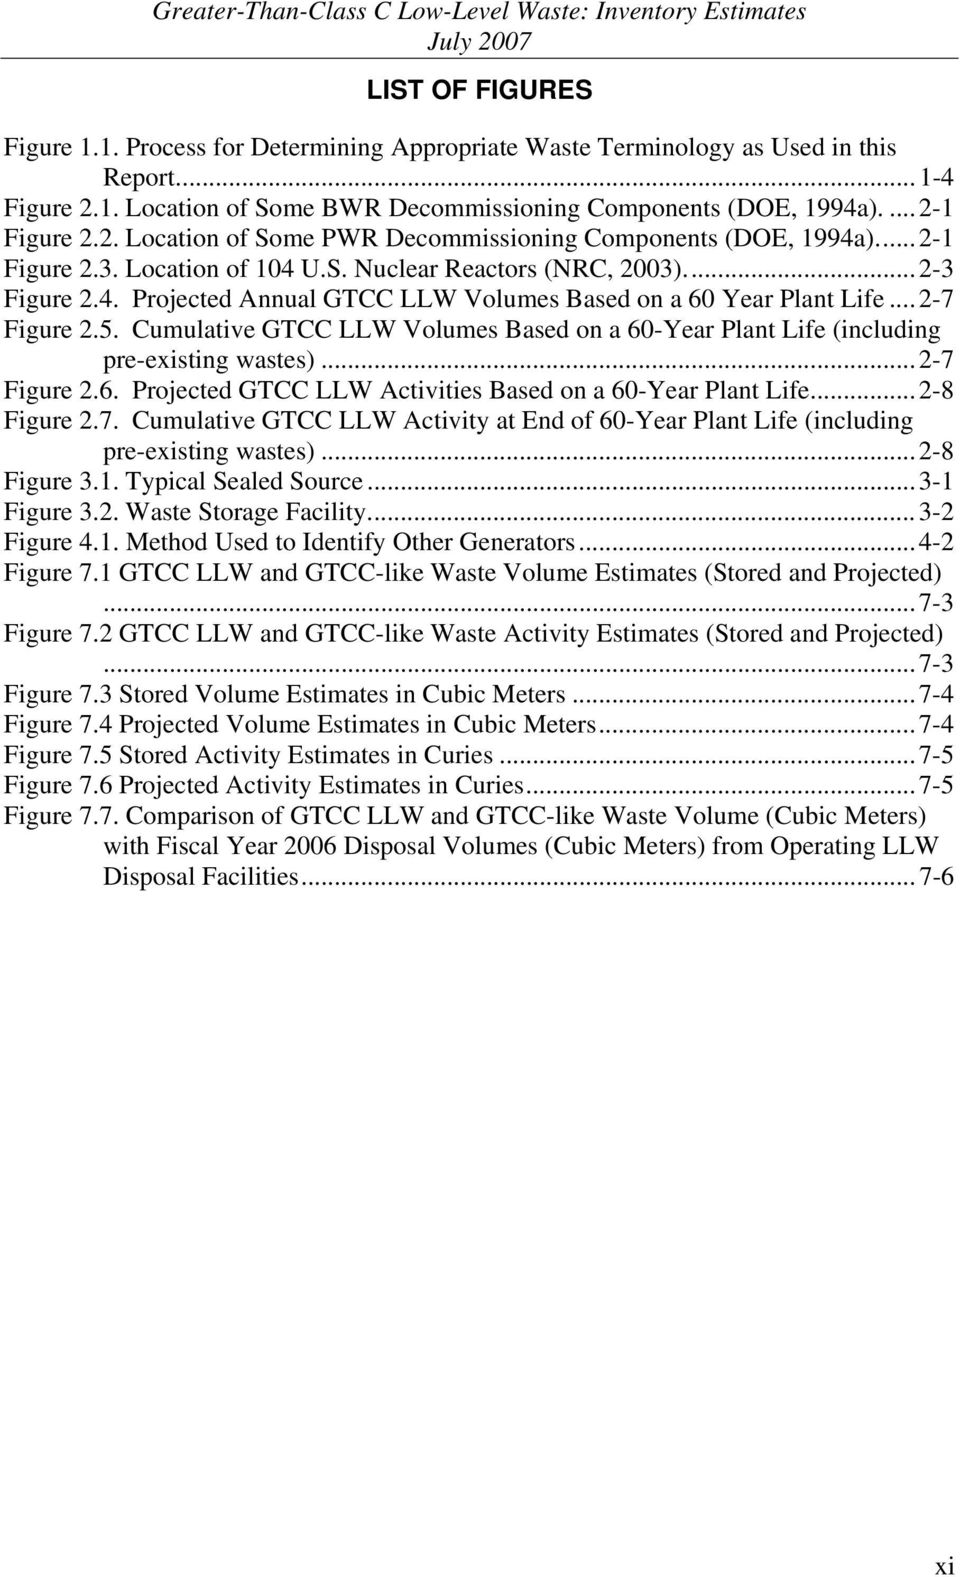 .. 2-7 Figure 2.5. Cumulative GTCC LLW Volumes Based on a 60-Year Plant Life (including pre-existing wastes)...2-7 Figure 2.6. Projected GTCC LLW Activities Based on a 60-Year Plant Life...2-8 Figure 2.